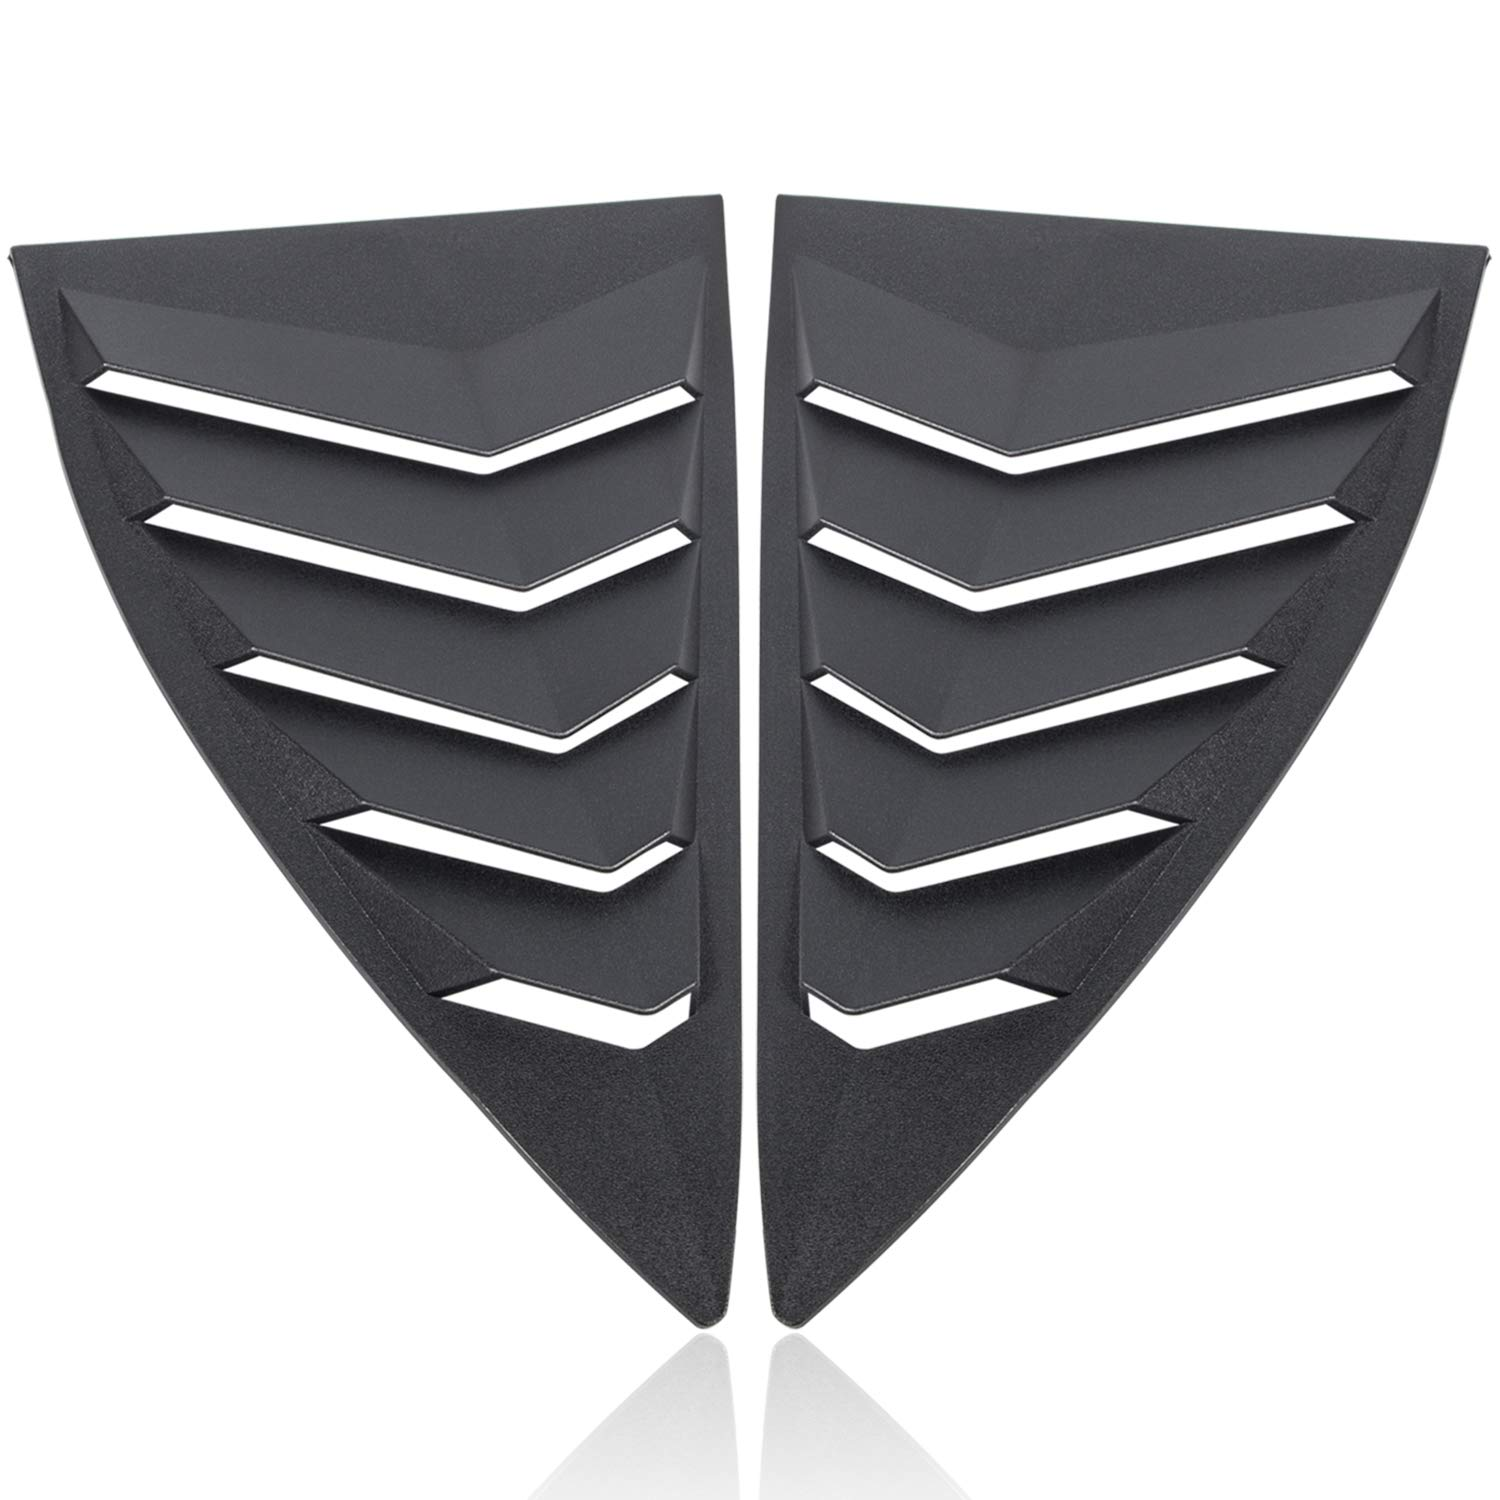 Camoo GT Styling Quarter Side Window Louvers for 2010-2015 Camaro